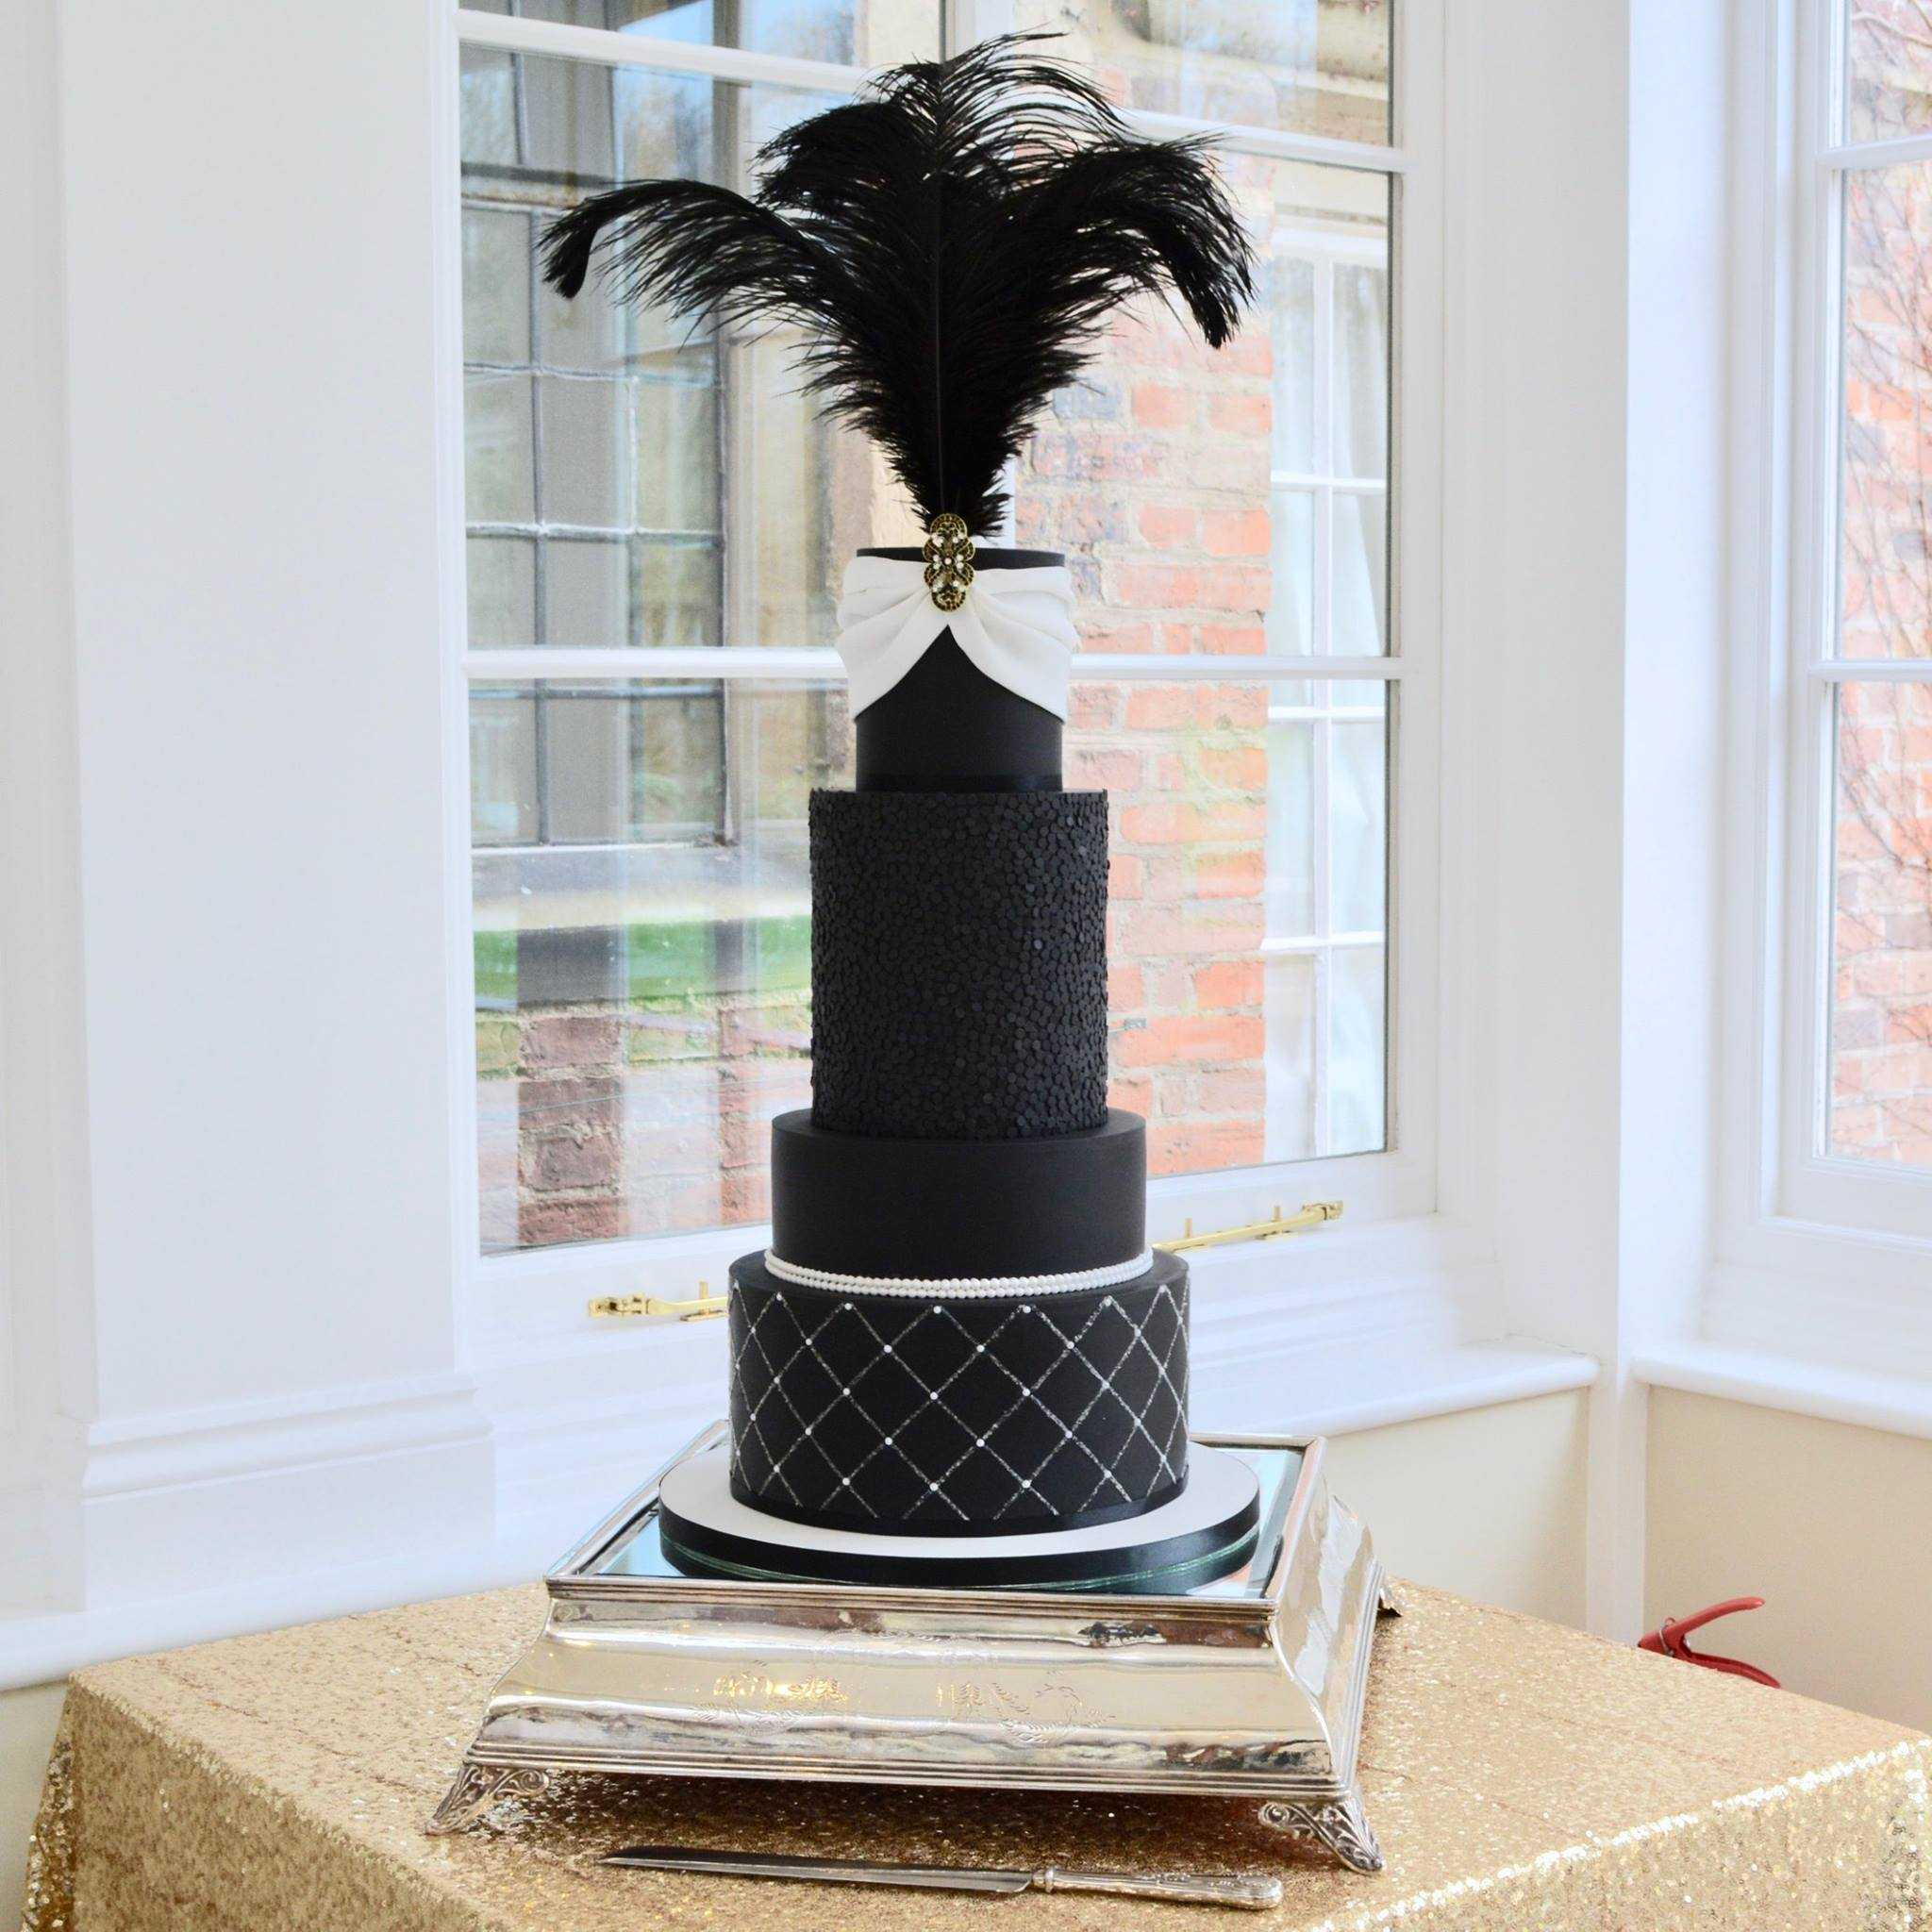 All Black fondant wedding cake with feathers